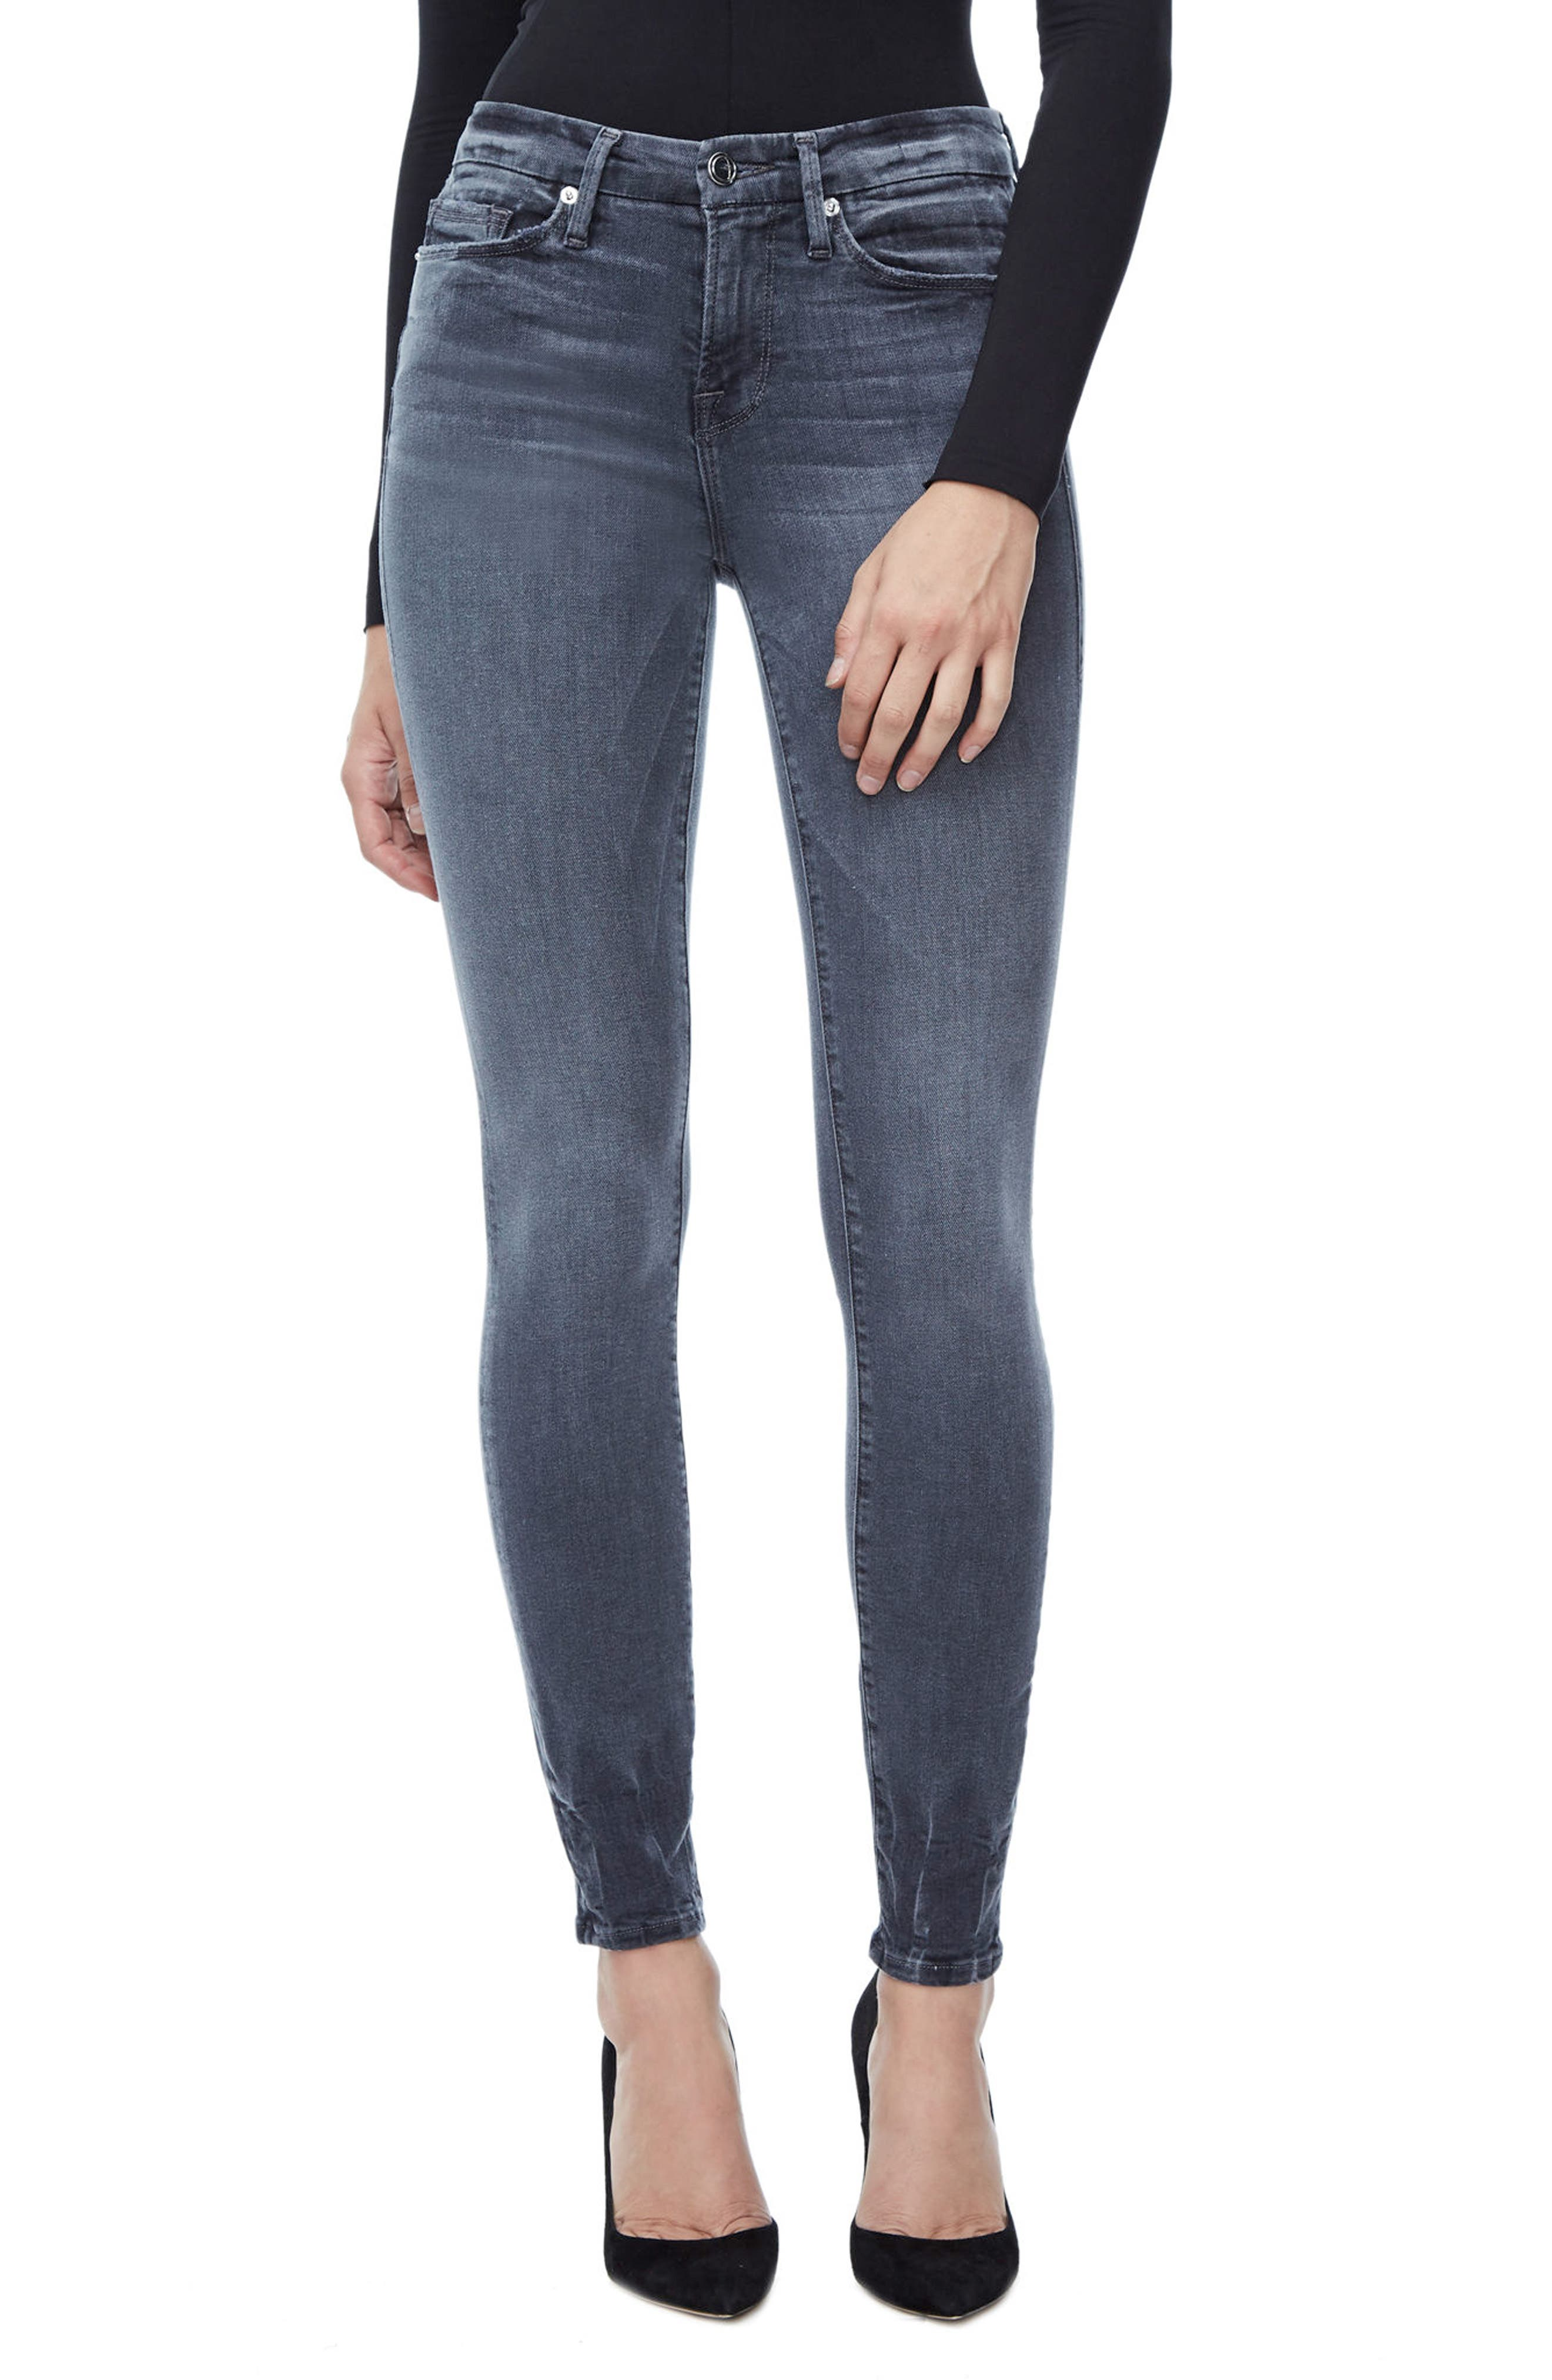 Main Image - Good American Good Legs High Waist Skinny Jeans (Grey 002) (Extended Sizes)